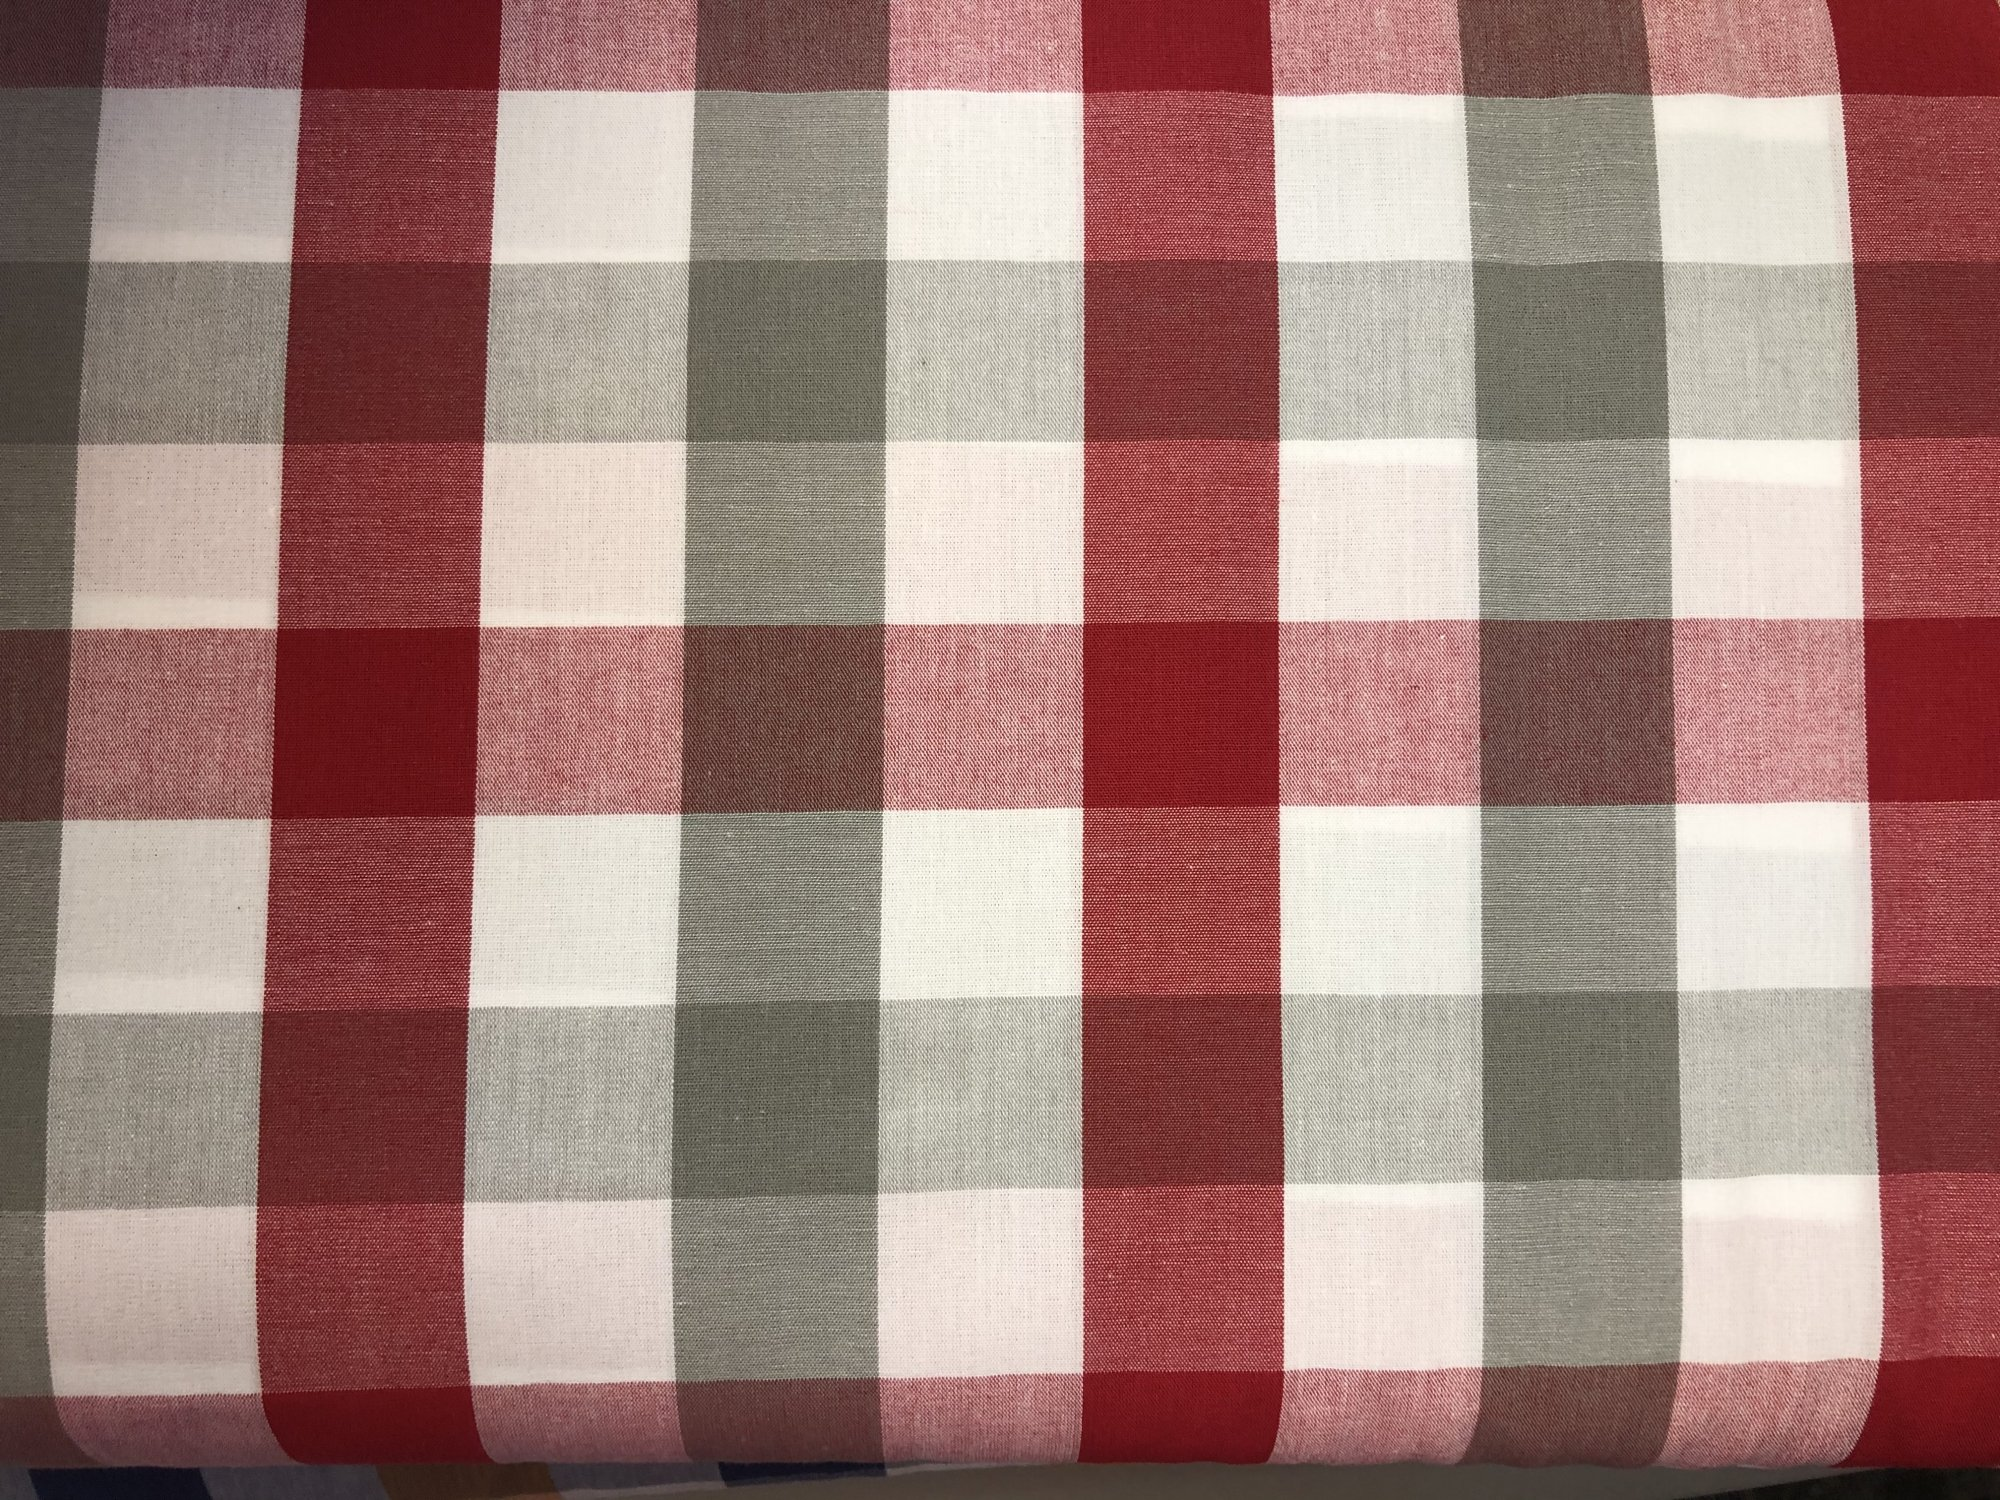 Red, Grey and White Tri-Check Fabric by Fabric Finders